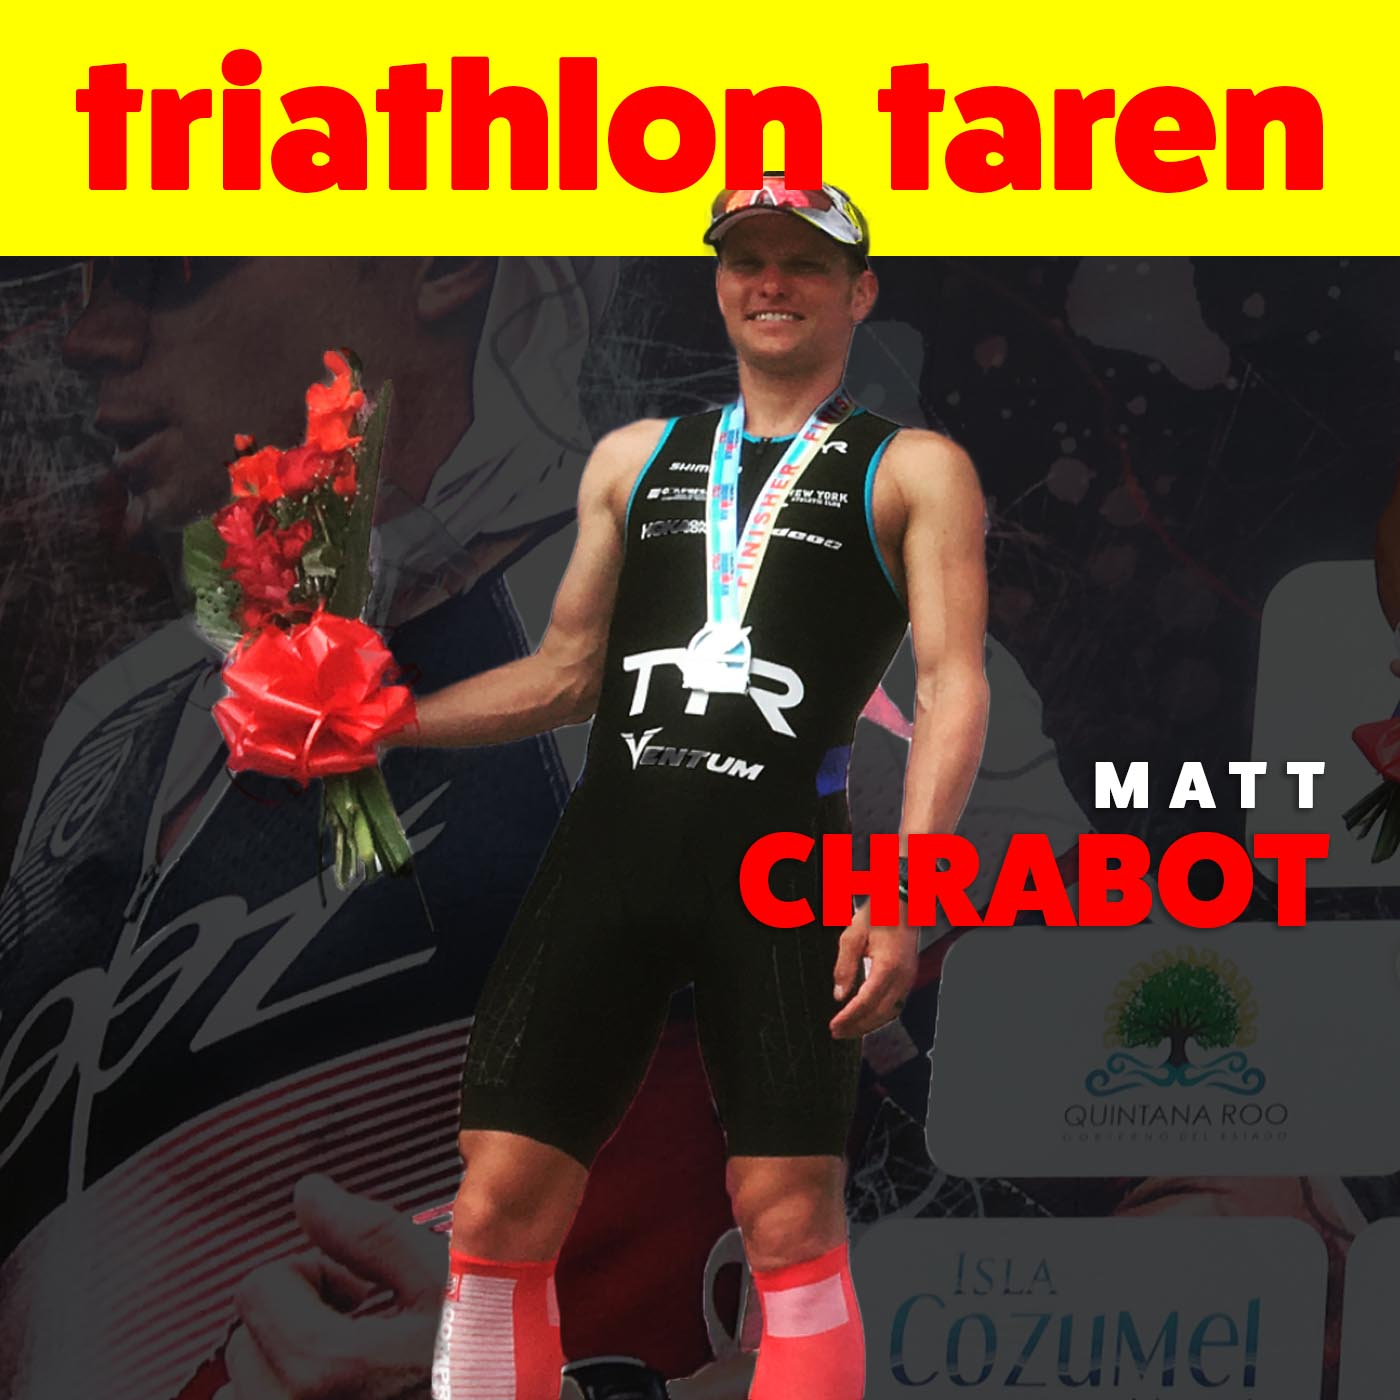 Matt Chrabot: The Pro Ironman Triathlete People Need to Watch Out For in 2018